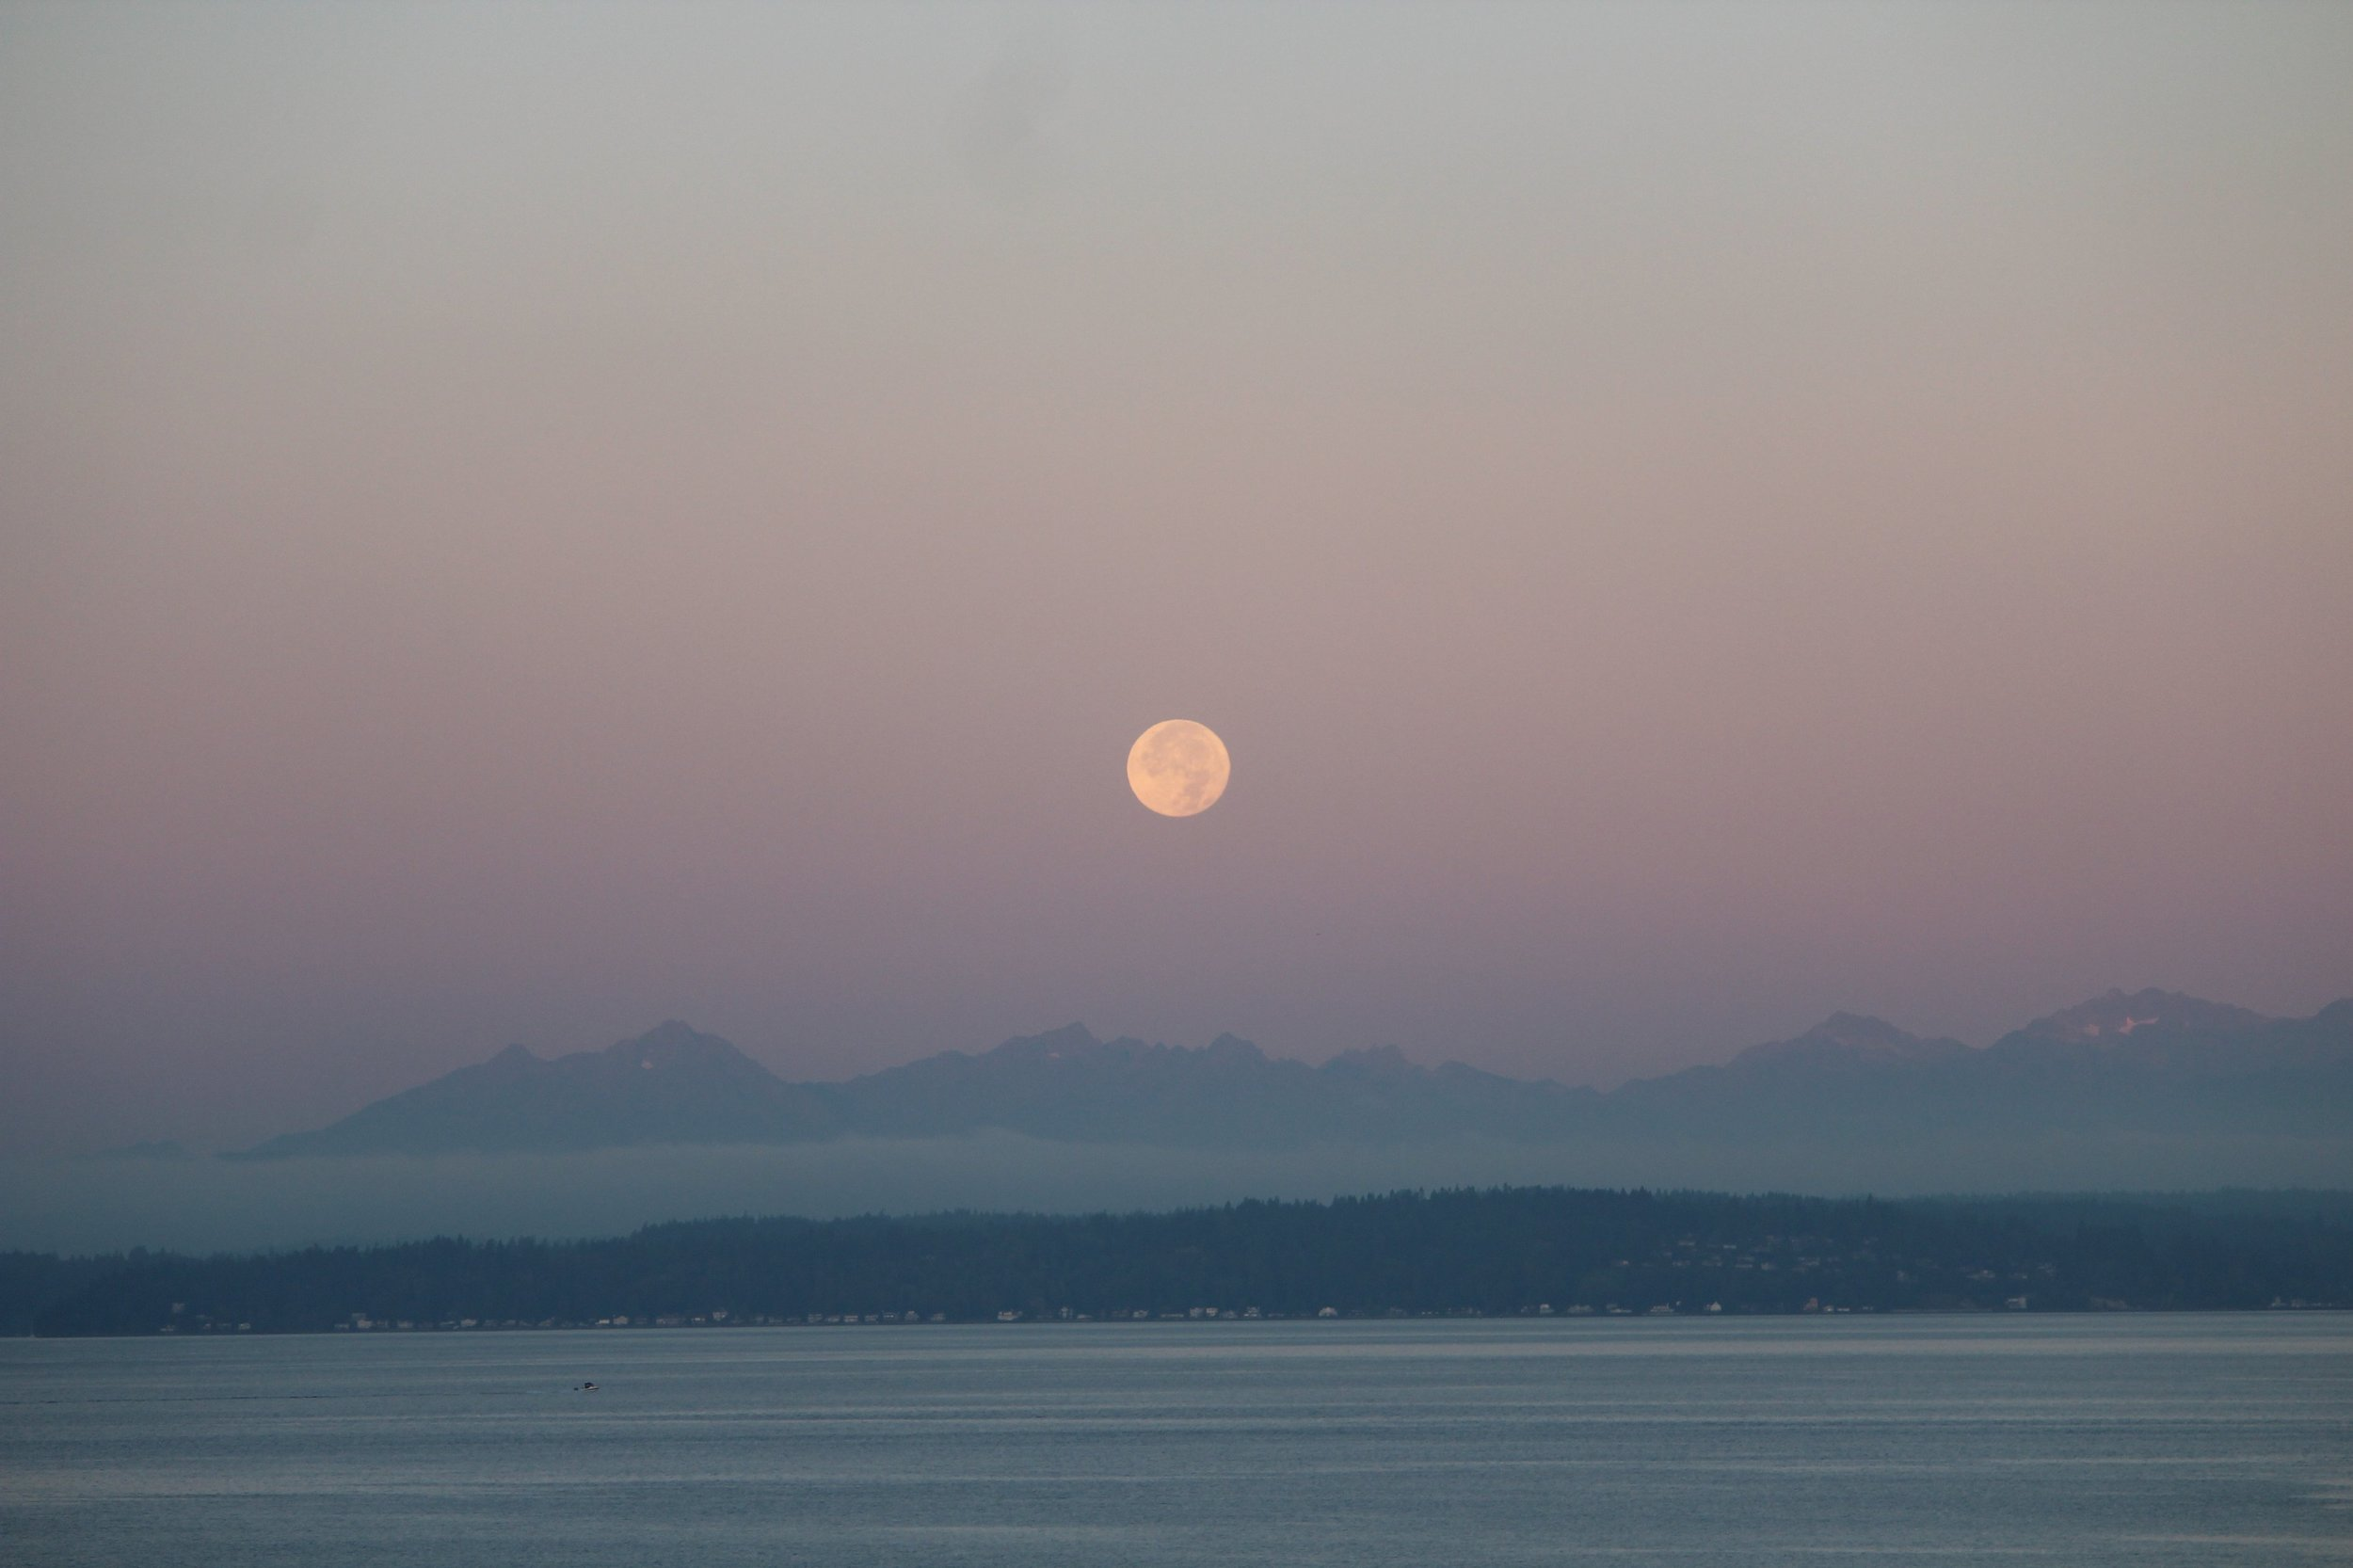 moonrise-over-lake-and-mountains.jpg